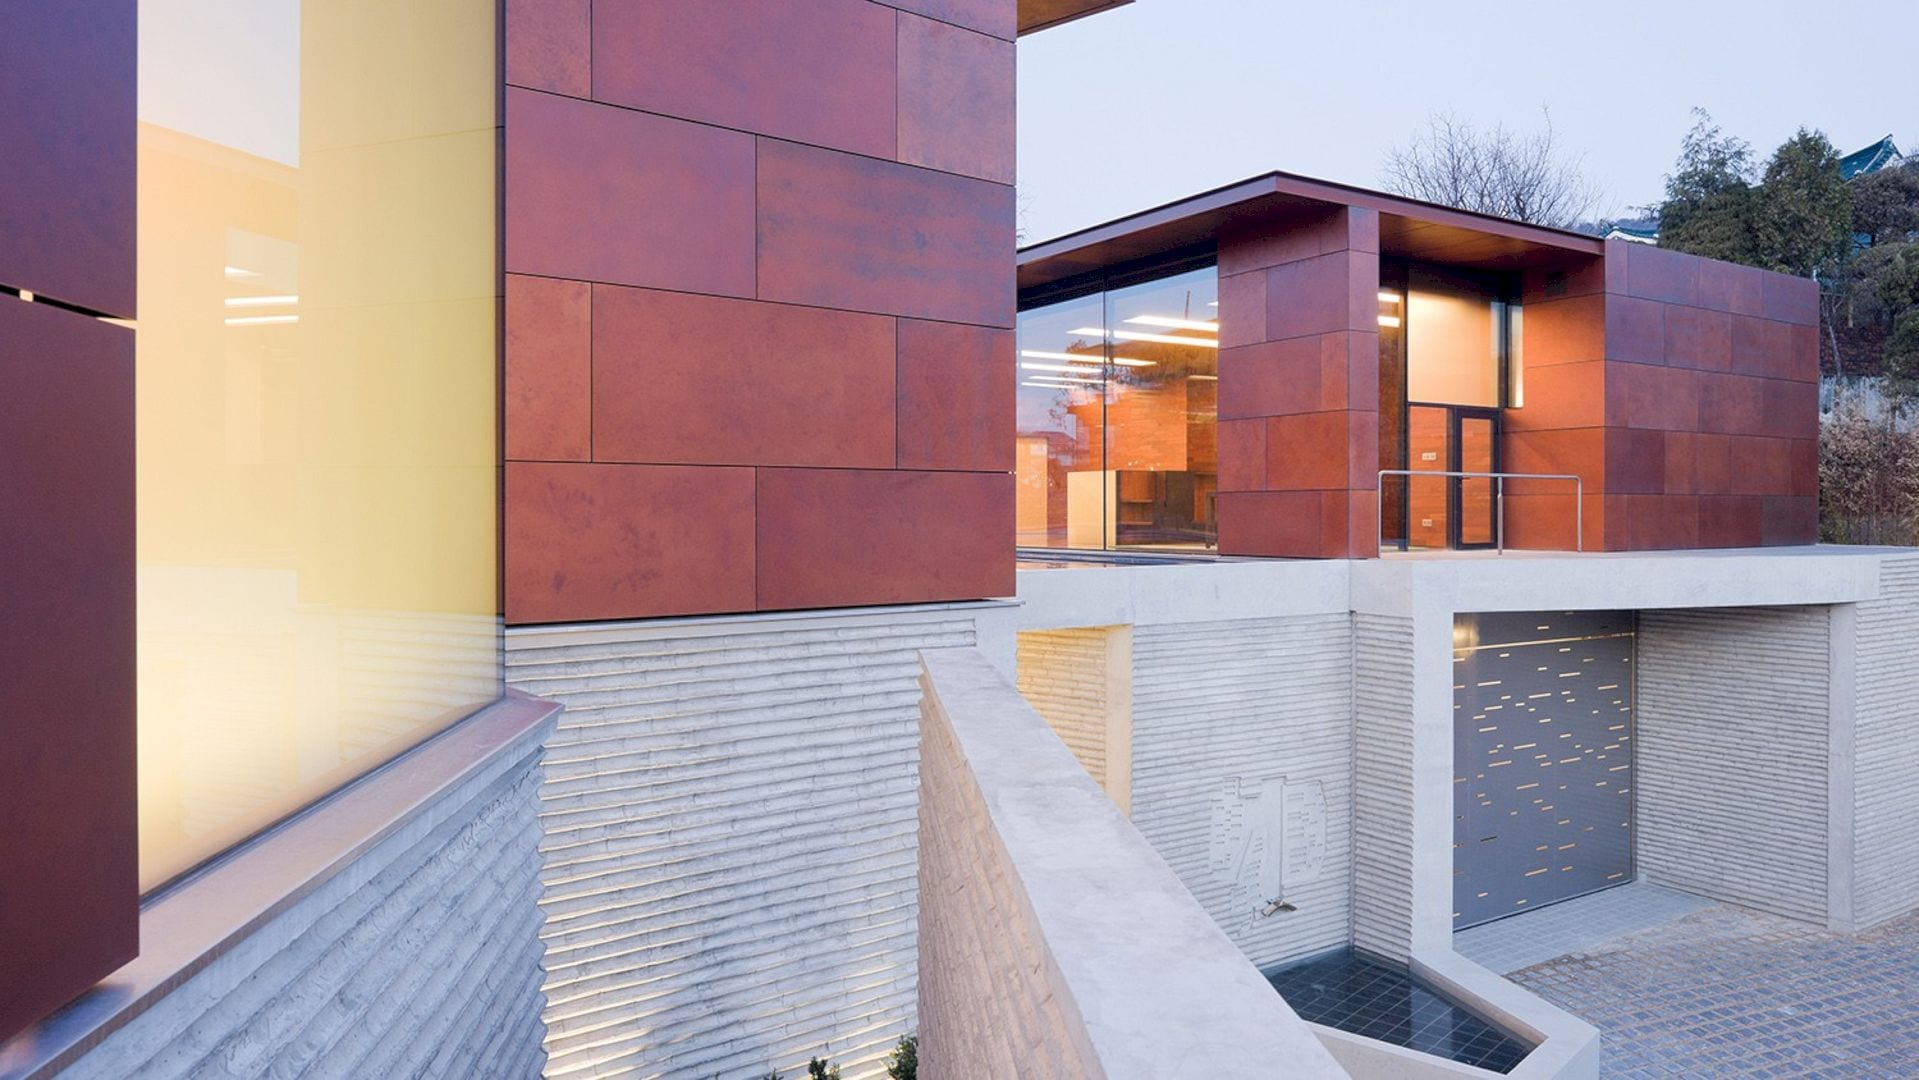 Daeyang Gallery And House By Steven Holl Architects 5